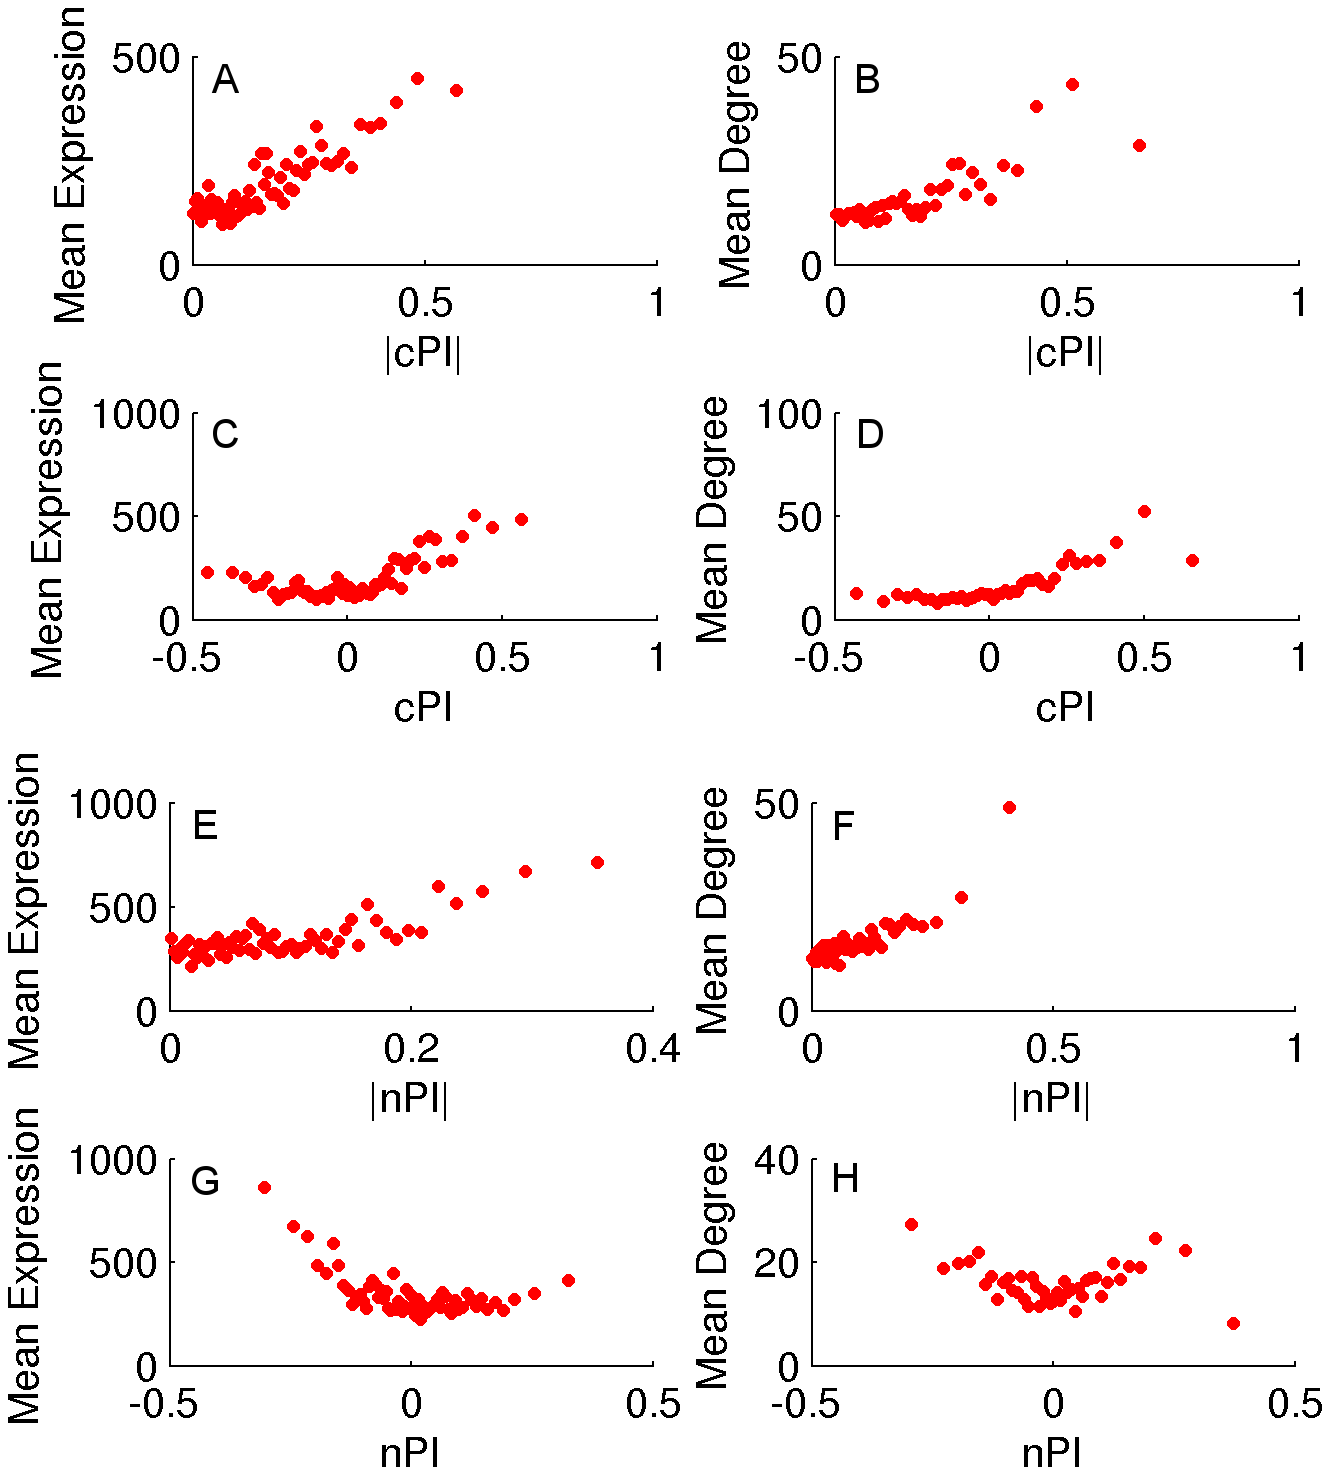 cPI and nPI vs. mean expression and degree in the human PPI network.